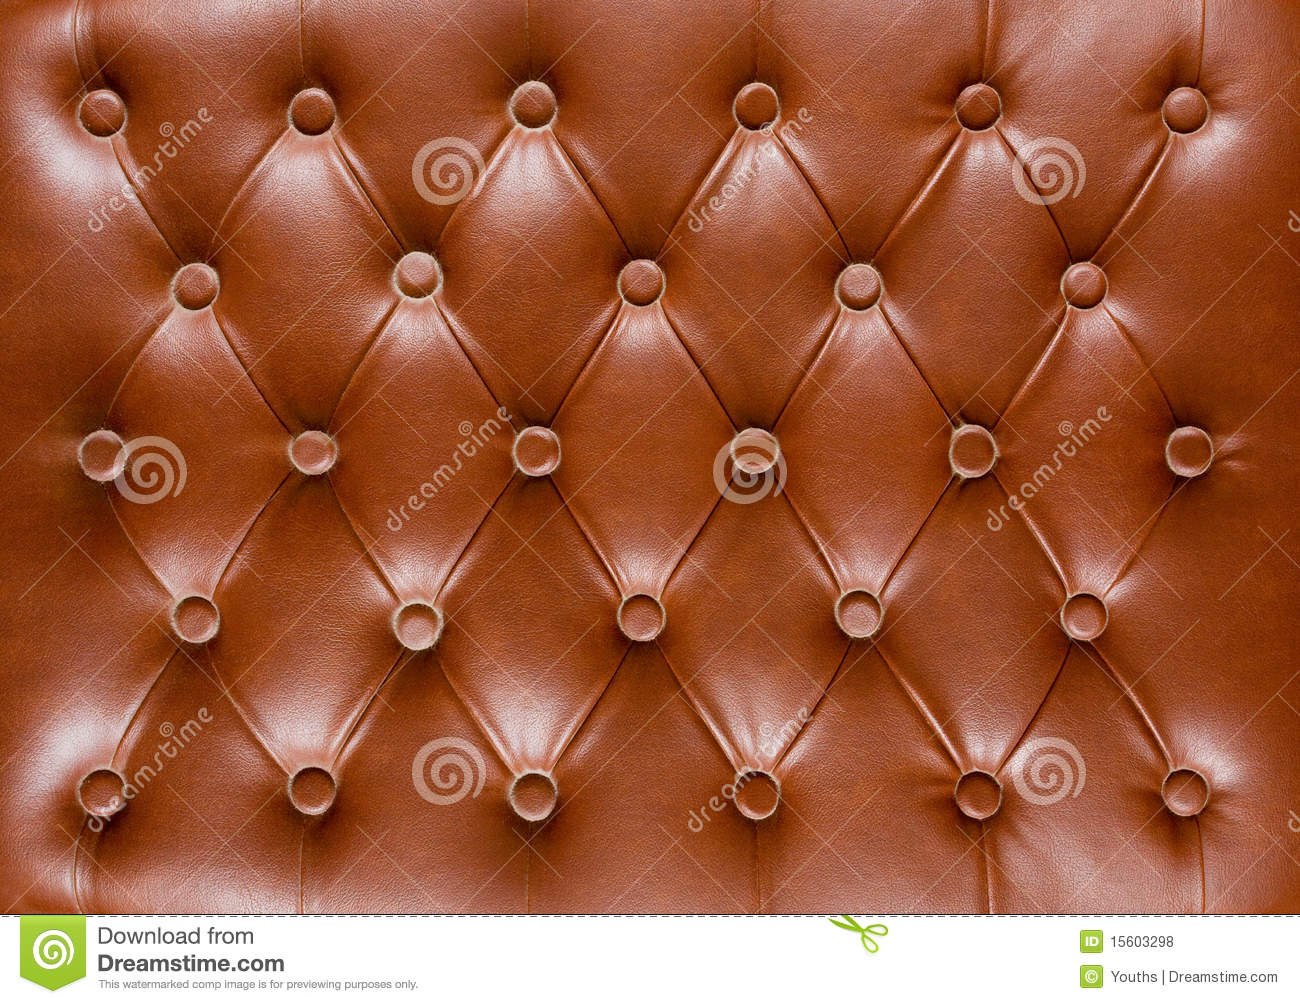 Leather cushion texture - Quality Leather Texture Royalty Free Stock Photos